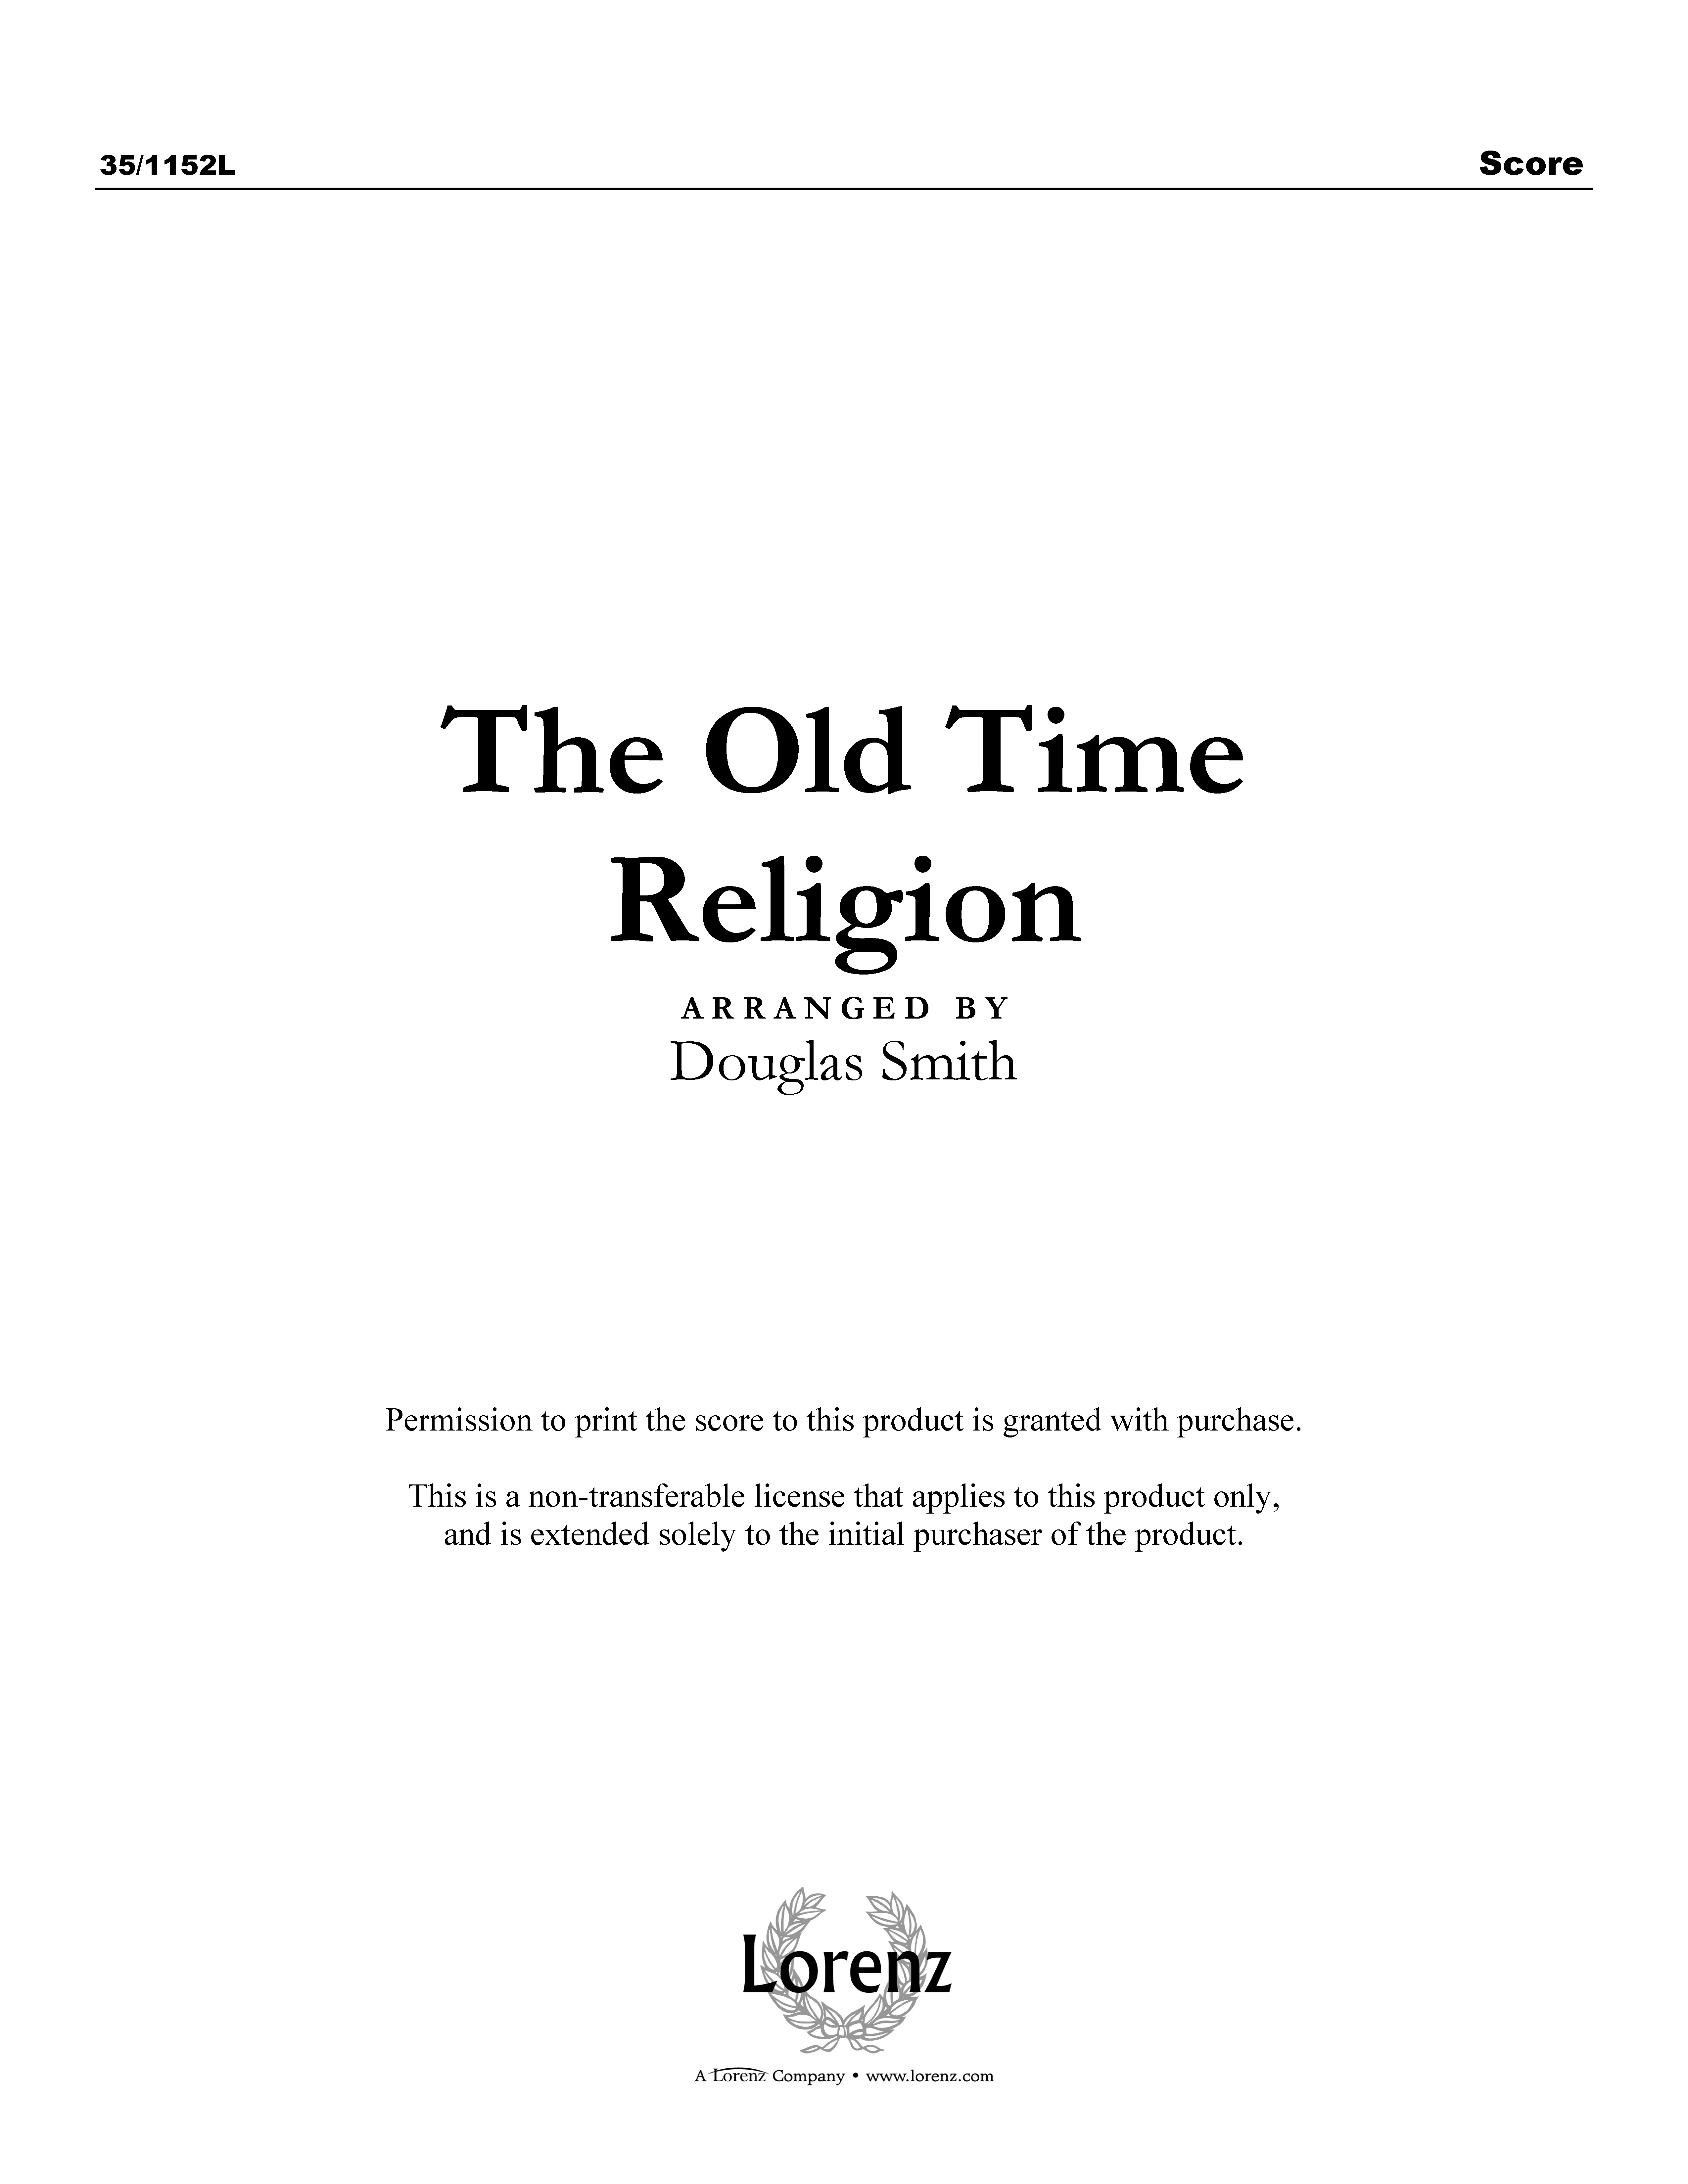 The Old Time Religion - Trumpet (Digital Delivery)